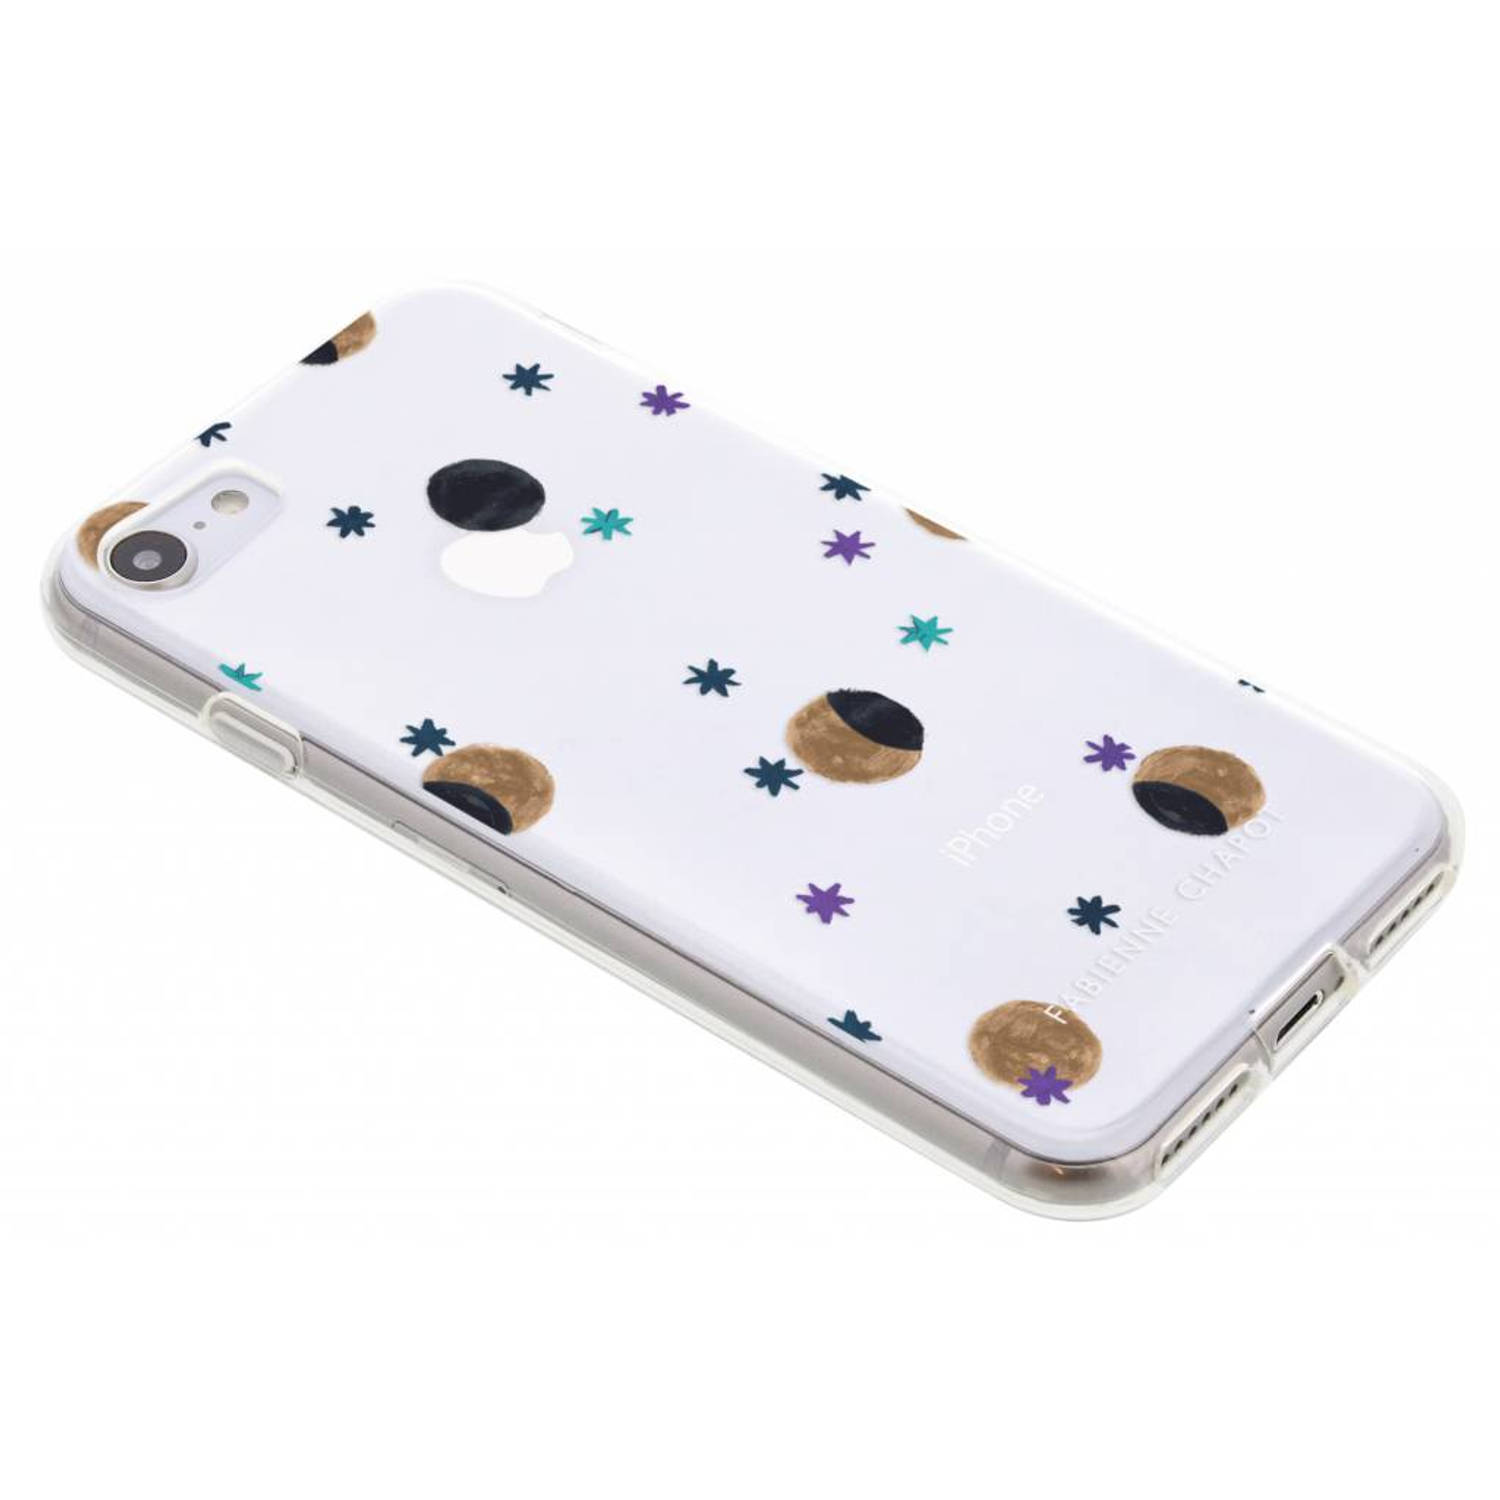 Over The Moon Softcase voor de iPhone 8 / 7